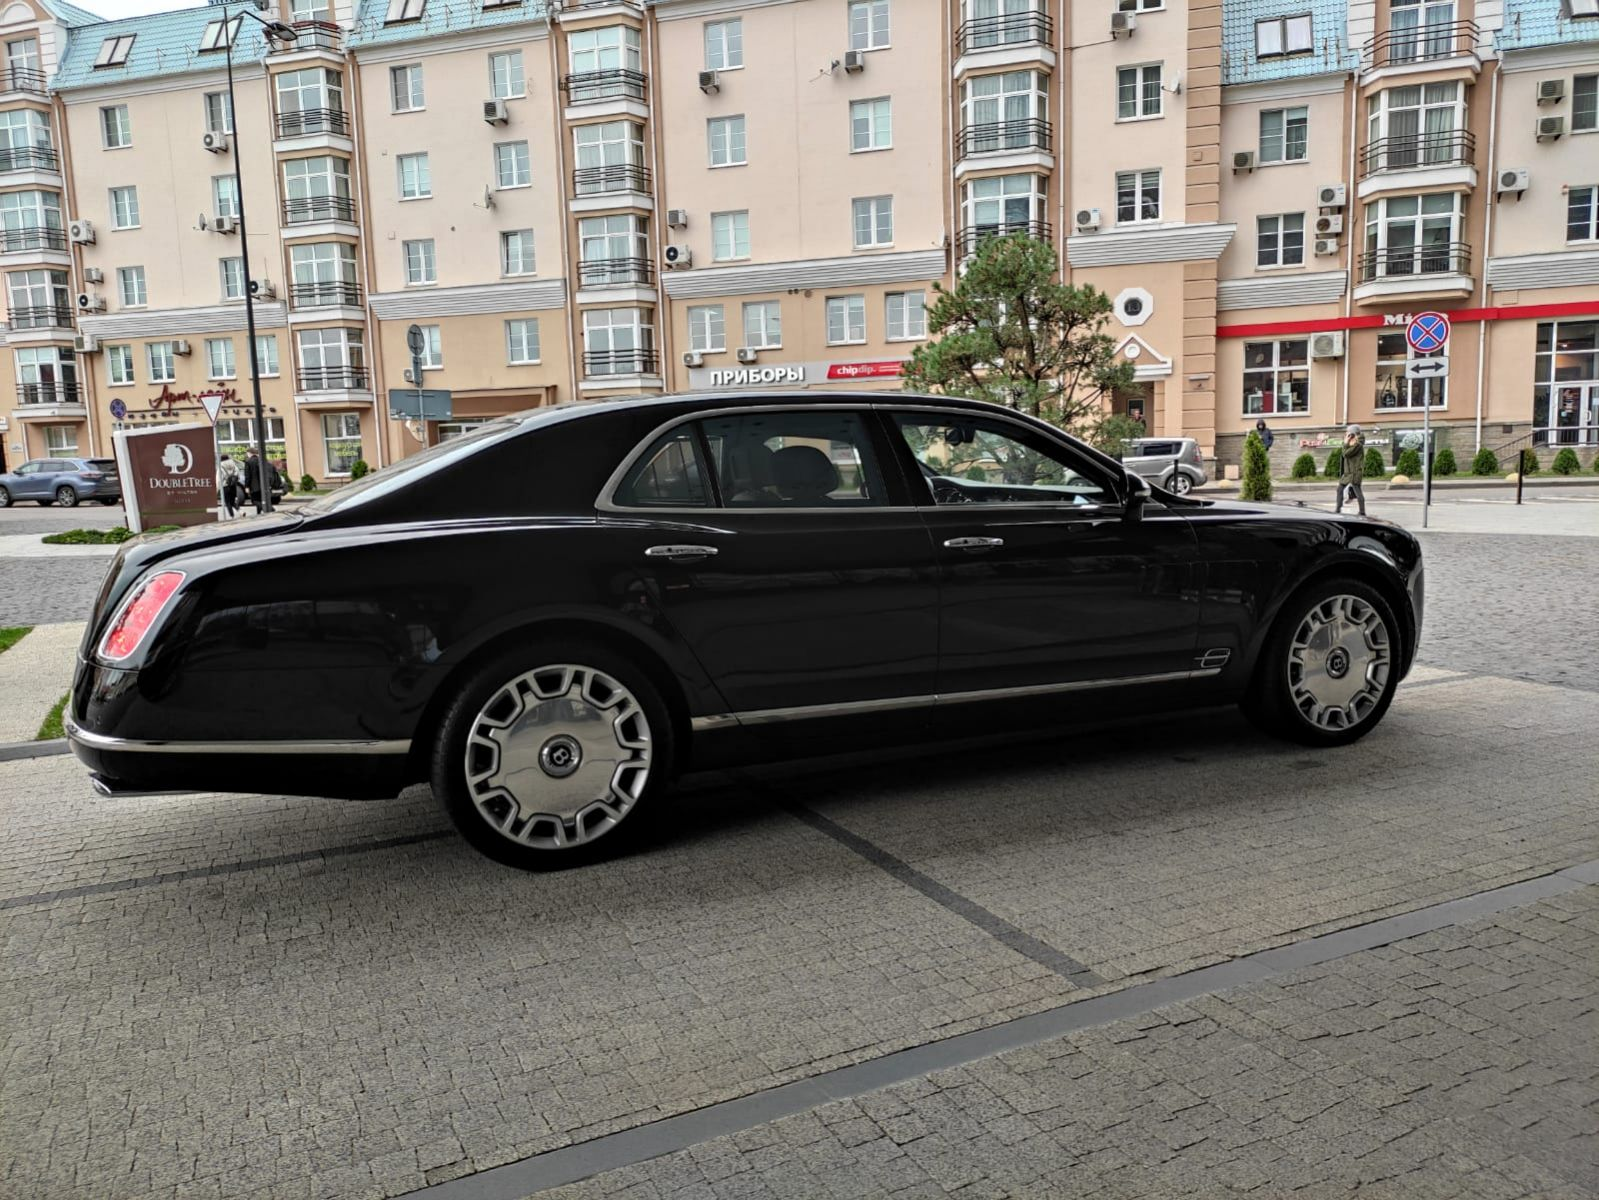 Bentley Mulsan rental. A premium car with a luxurious interior and impressive appearance.